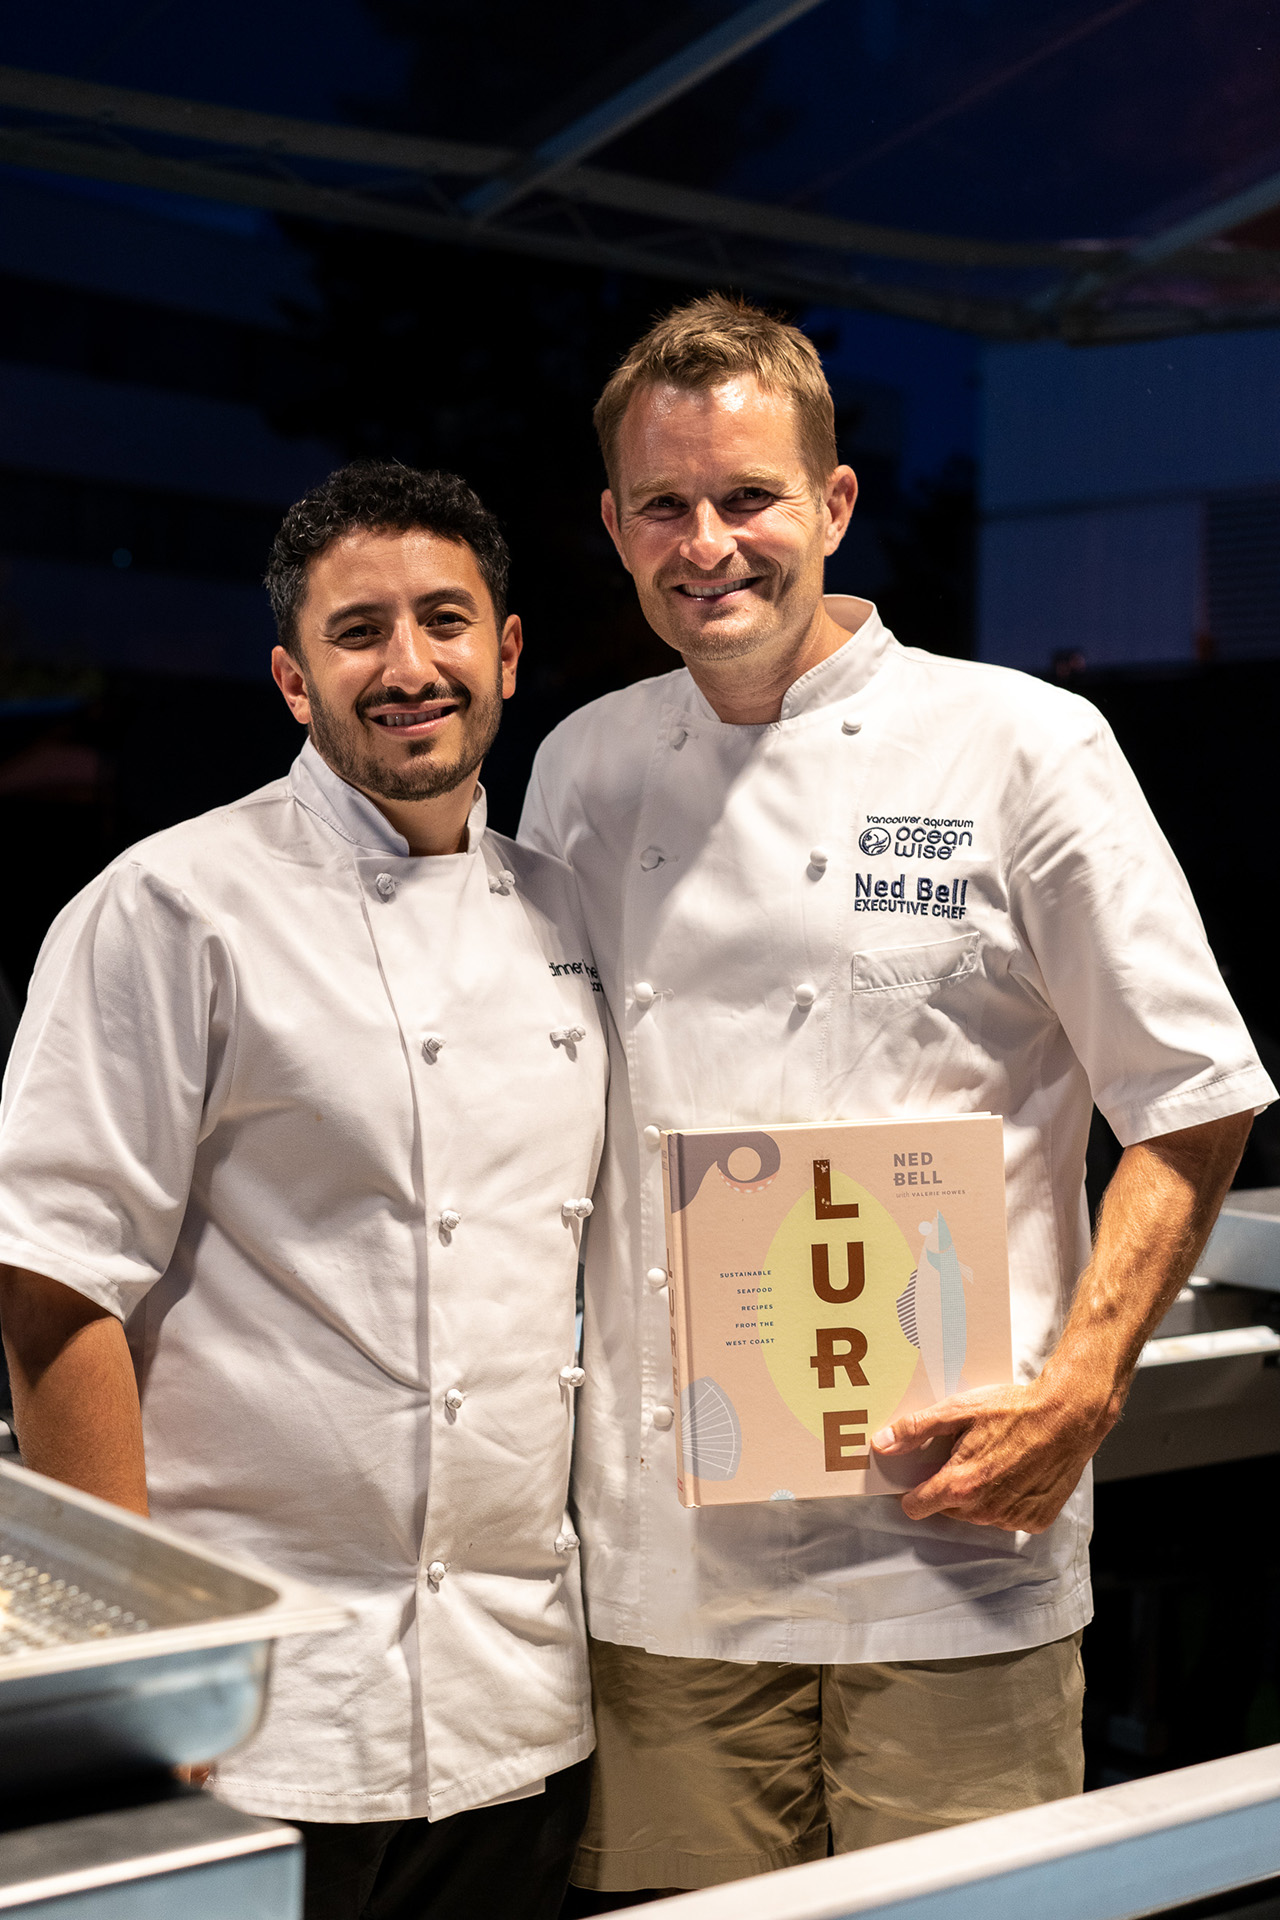 Chef Ned Bell with Chef Evan Elman on his team.